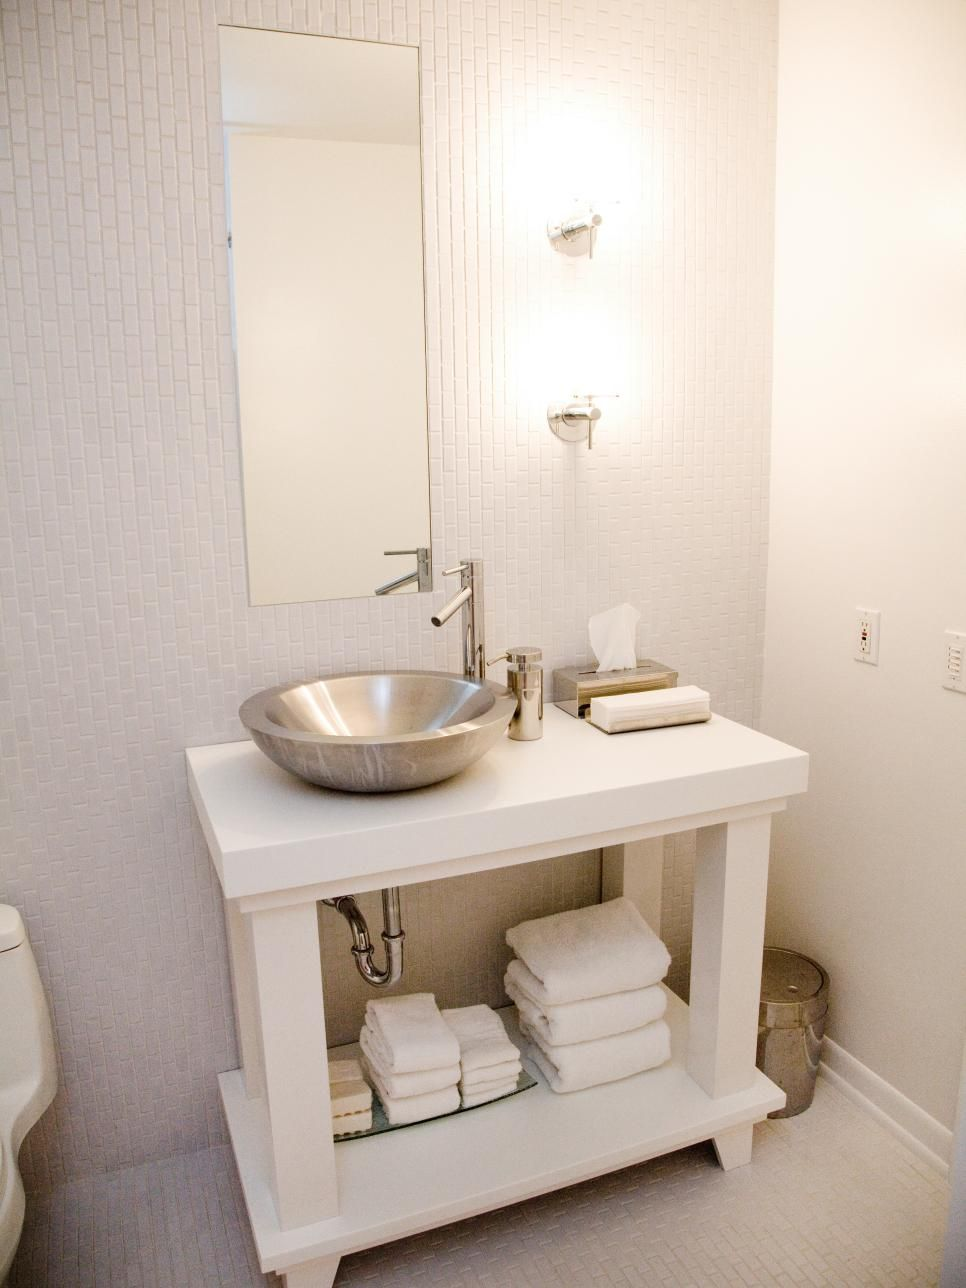 The All White Small Space Bathroom Features Full Length Tile Walls And Flooring The Contemp Small Bathroom Vanities White Vanity Bathroom Traditional Bathroom